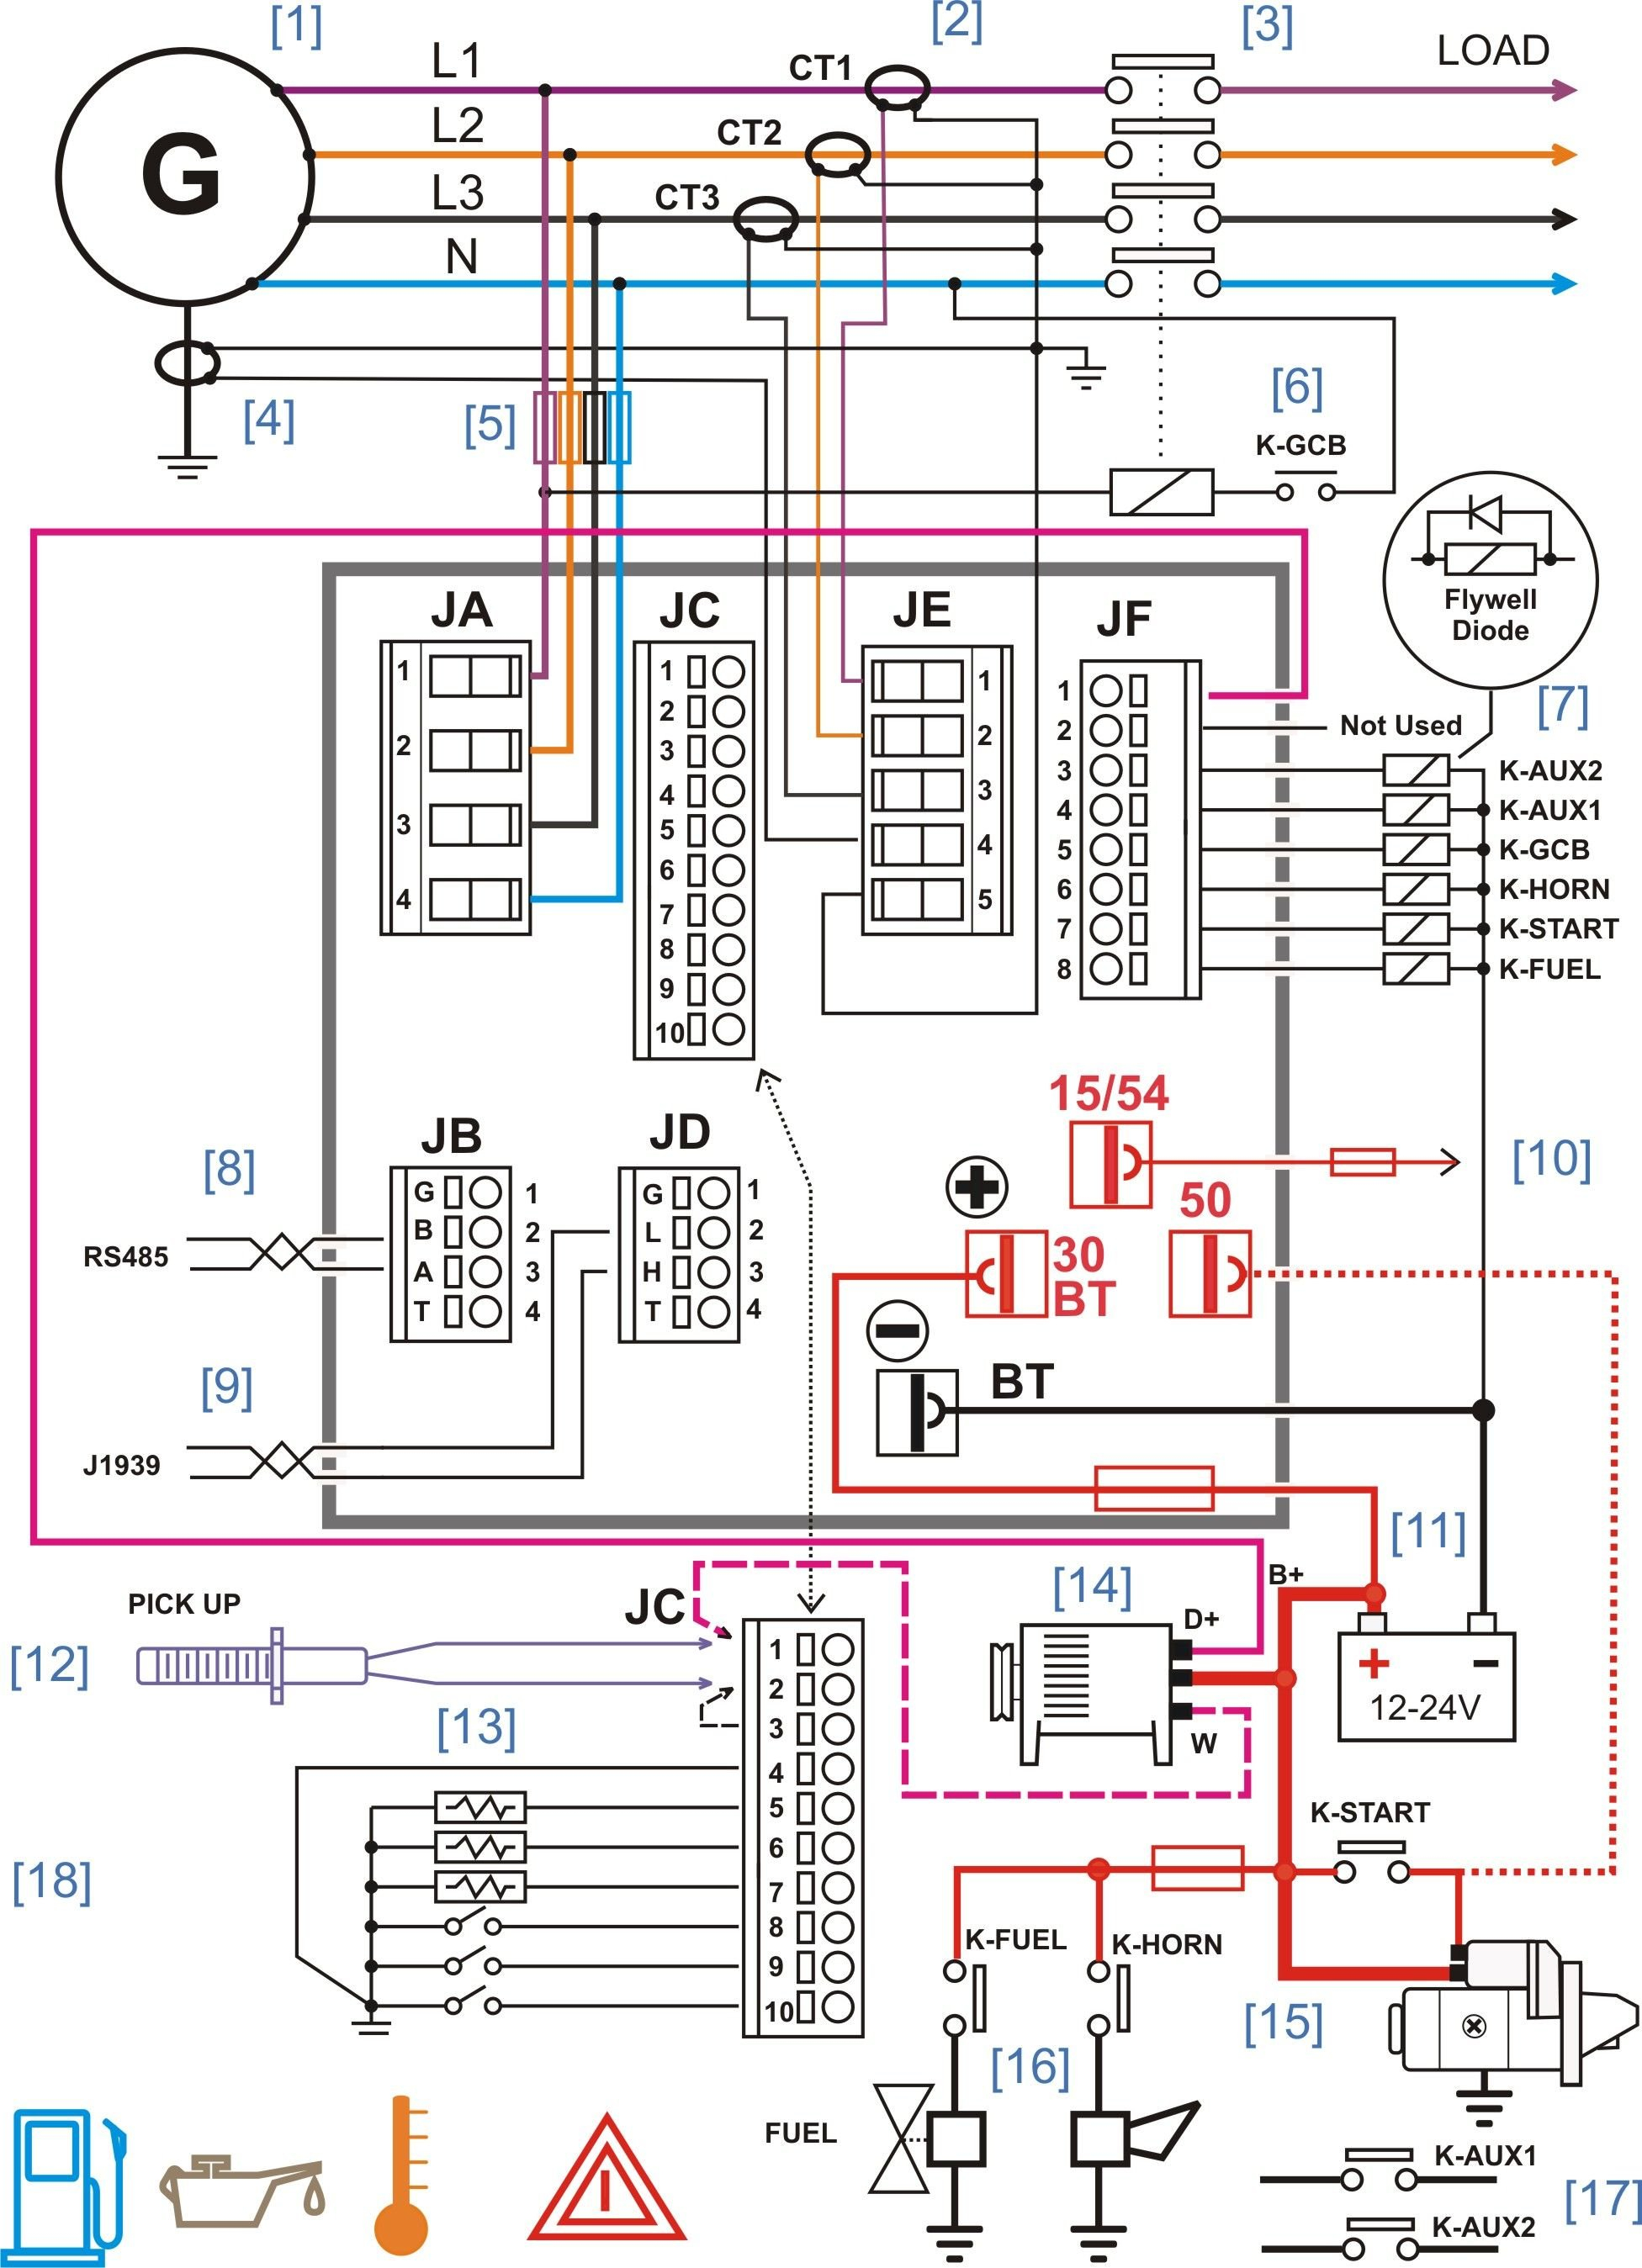 Magnetek Power Converter 6345 Wiring Diagram Gallery Download End Line Switch Beautiful Diesel Generator